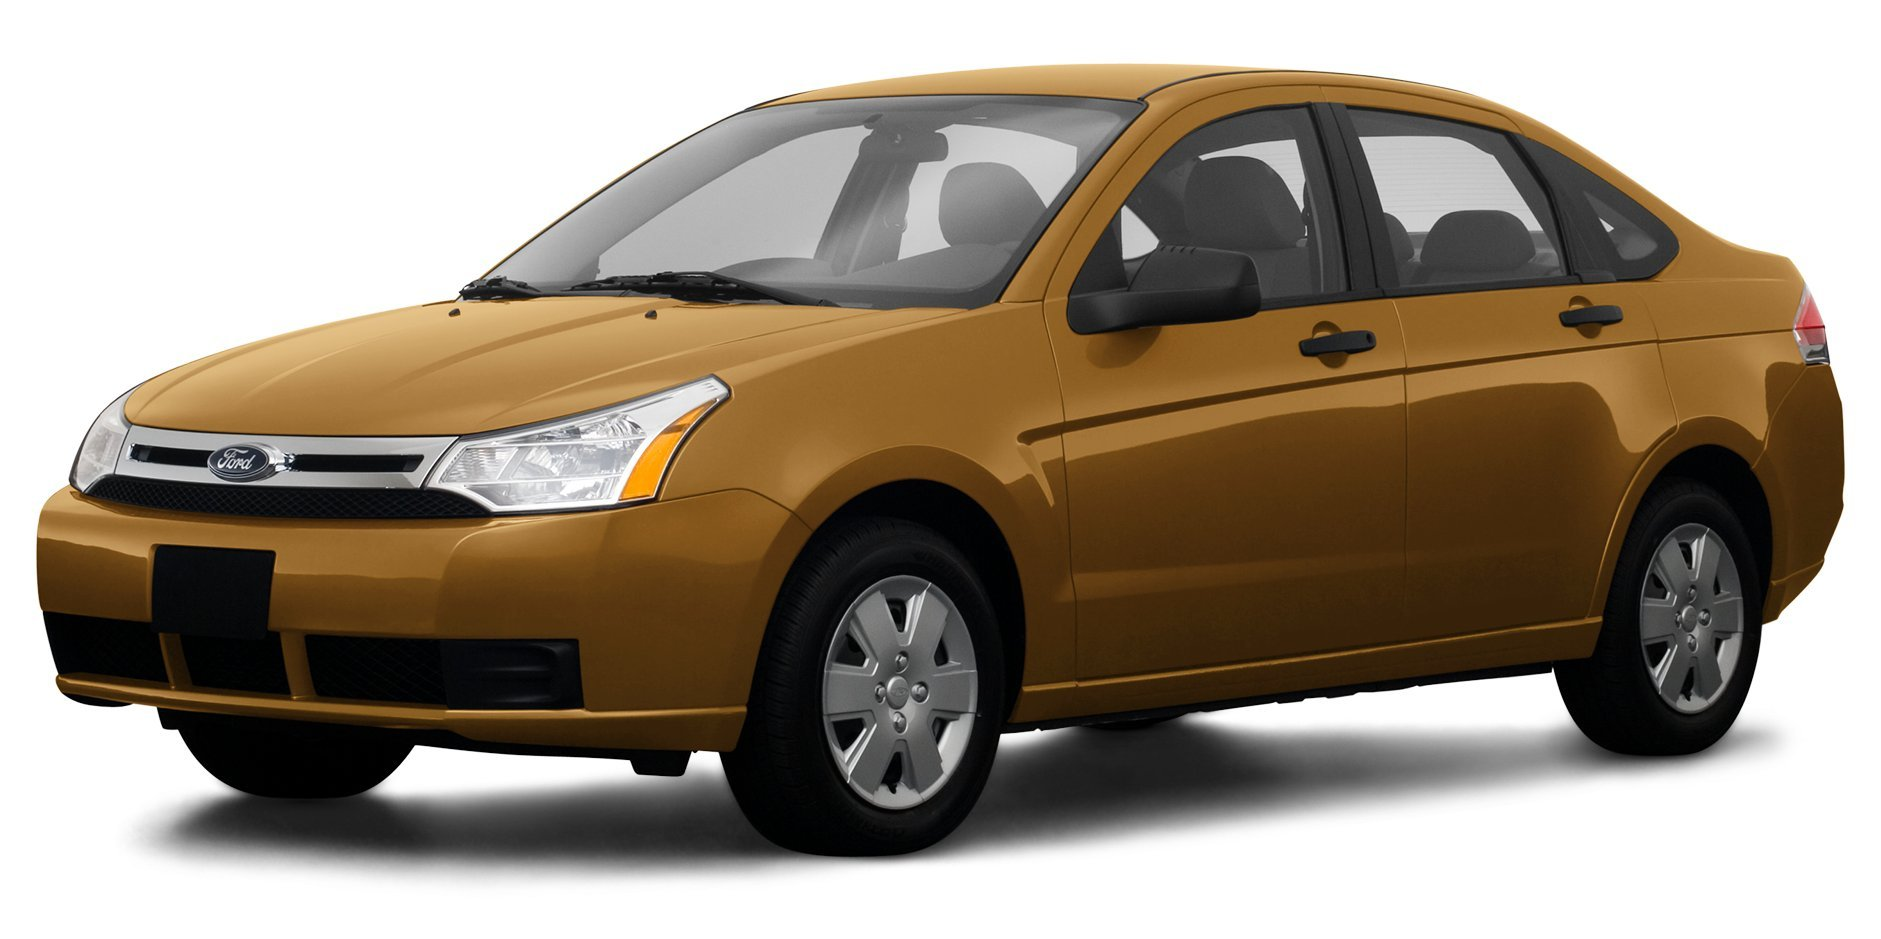 2009 ford focus reviews images and specs. Black Bedroom Furniture Sets. Home Design Ideas